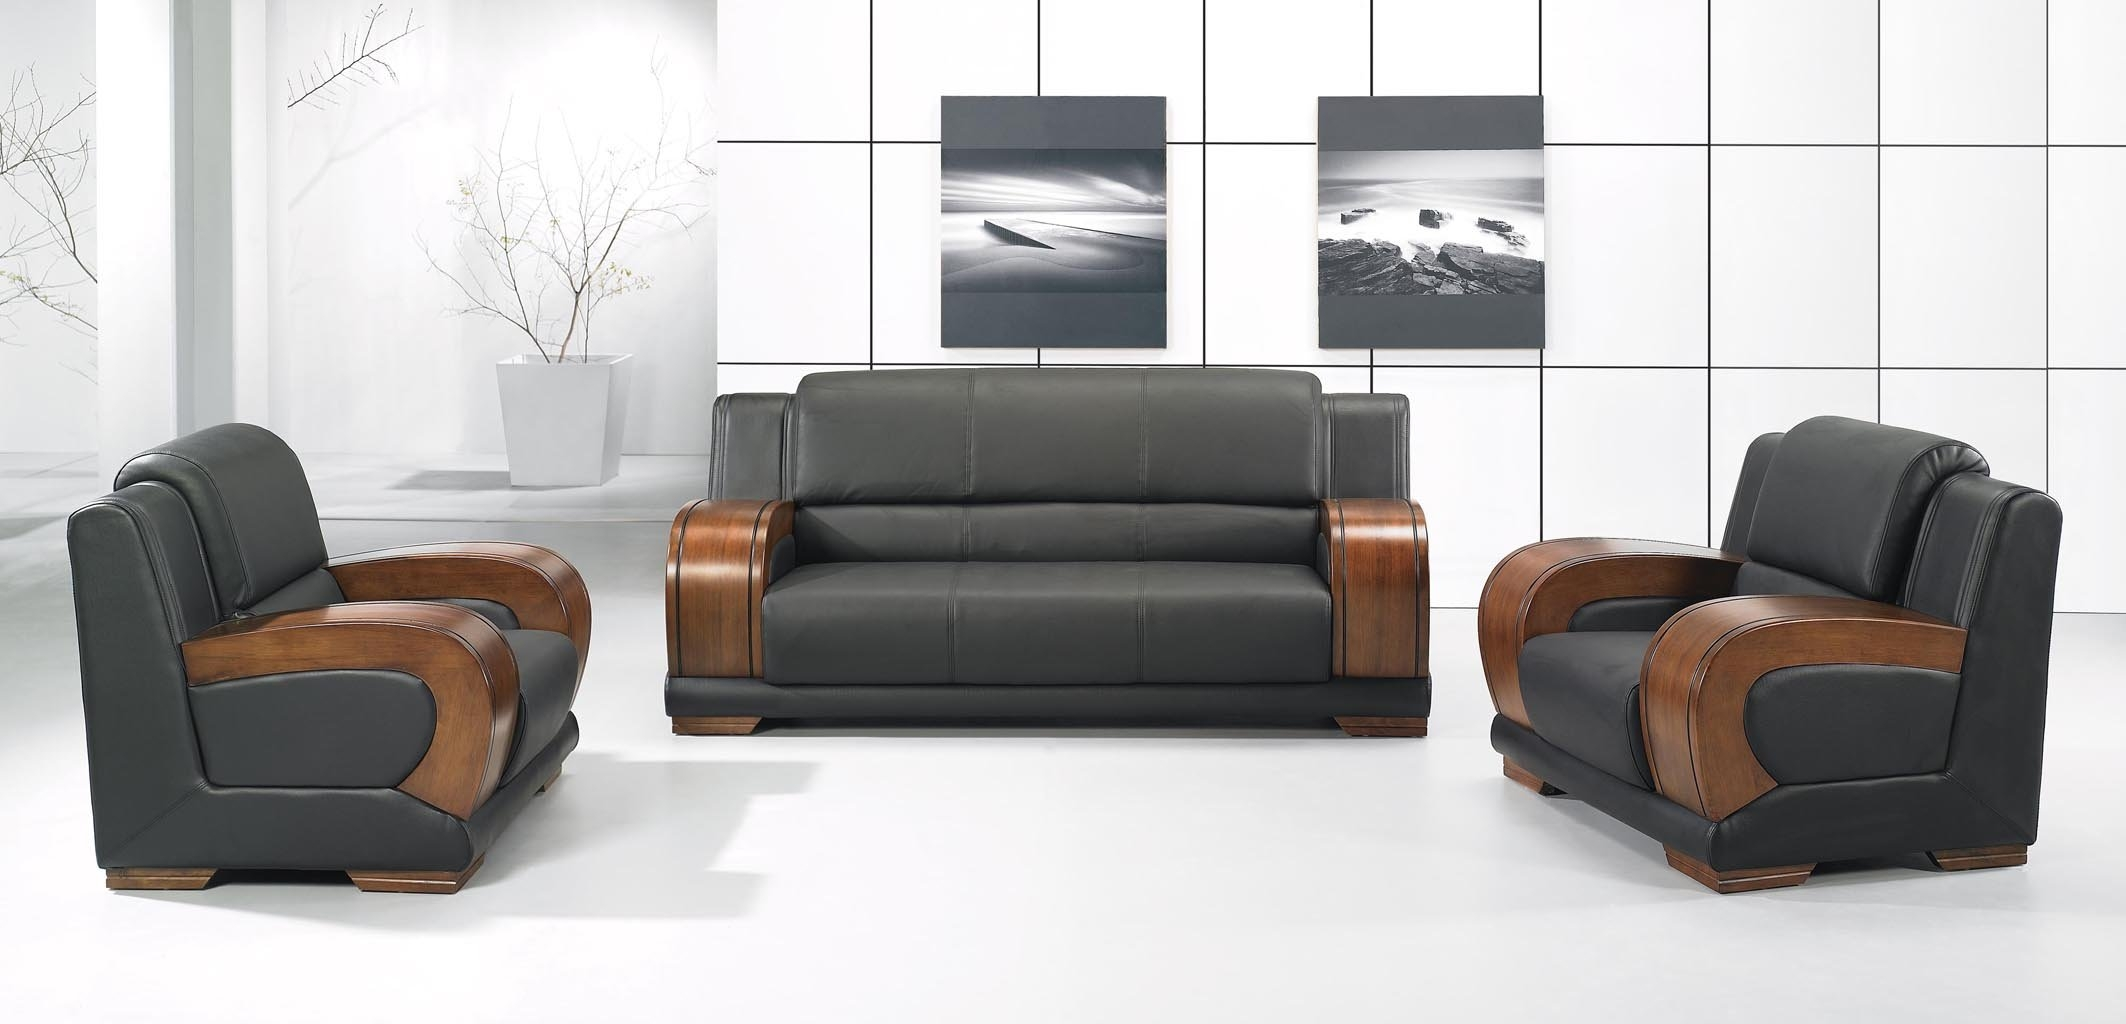 Chair Office Sofa Chair Popular Leather Office Sofa Buy Cheap Throughout Office Sofa Chairs (Image 4 of 15)